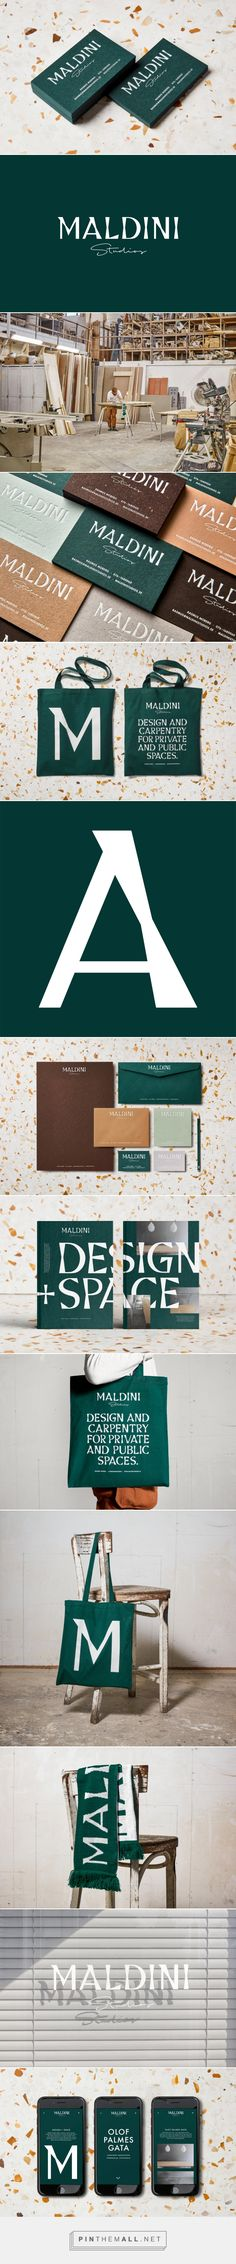 New Graphic Identity for Maldini Studios by Jens Nilsson — BP&O